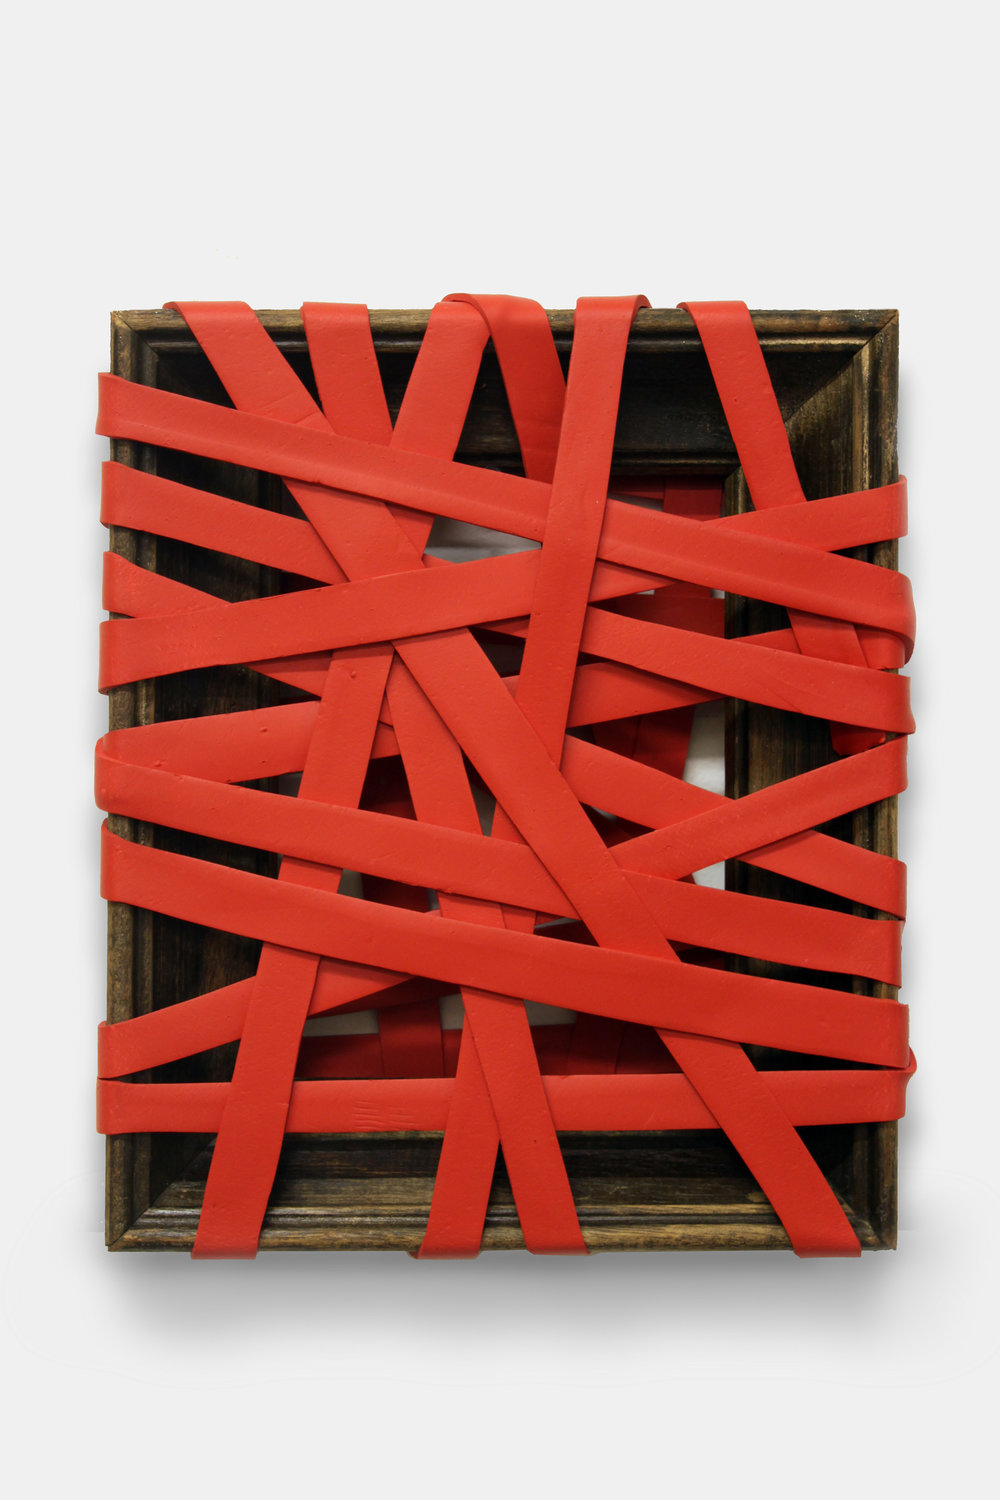 Bound (Red). Acrylic and wooden frame. 11.5 x 9.5 x 2 In. 2013